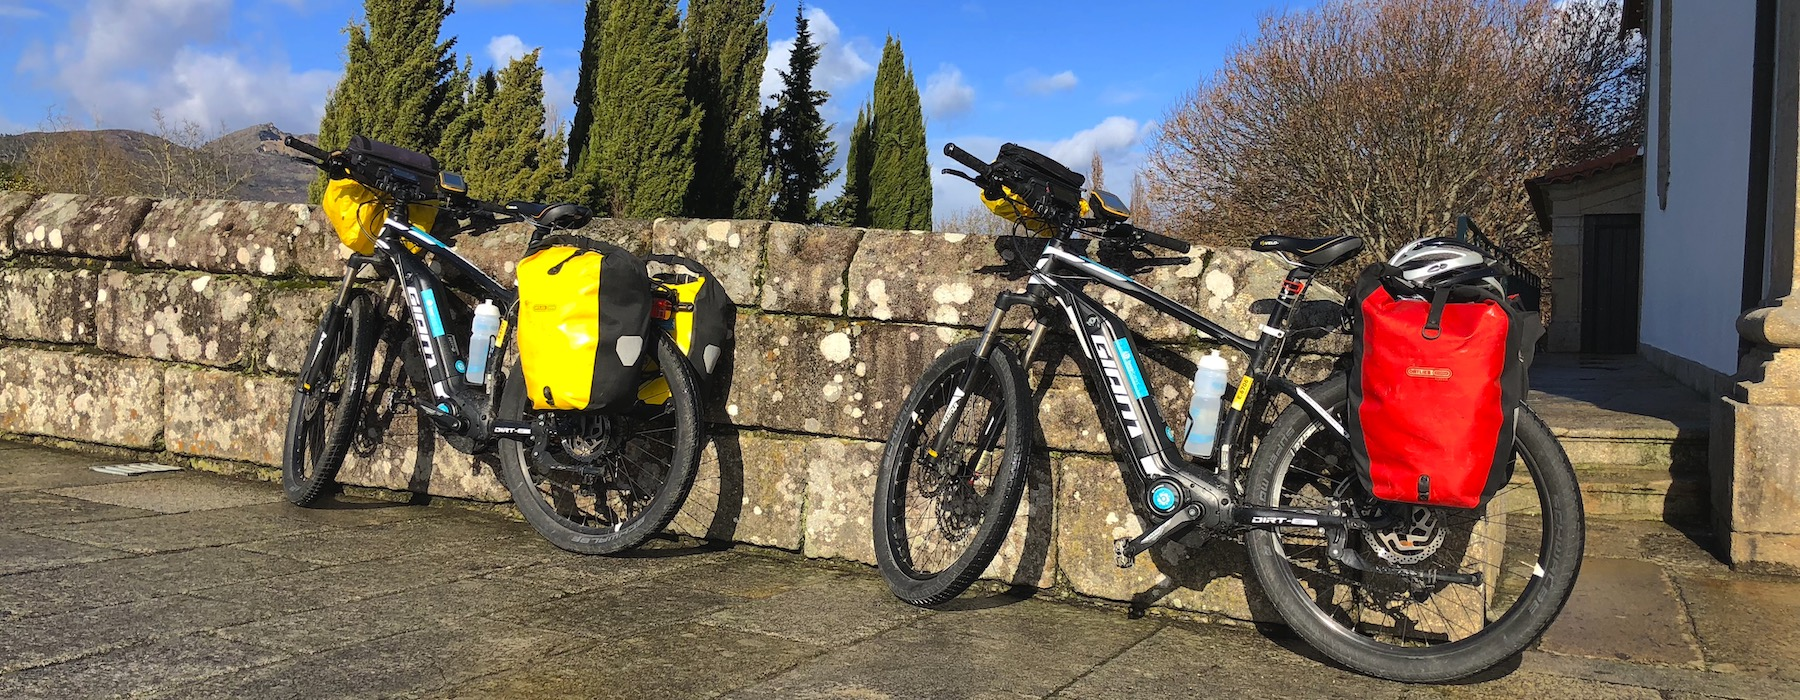 Rental Bikes with Panniers for cycle touring